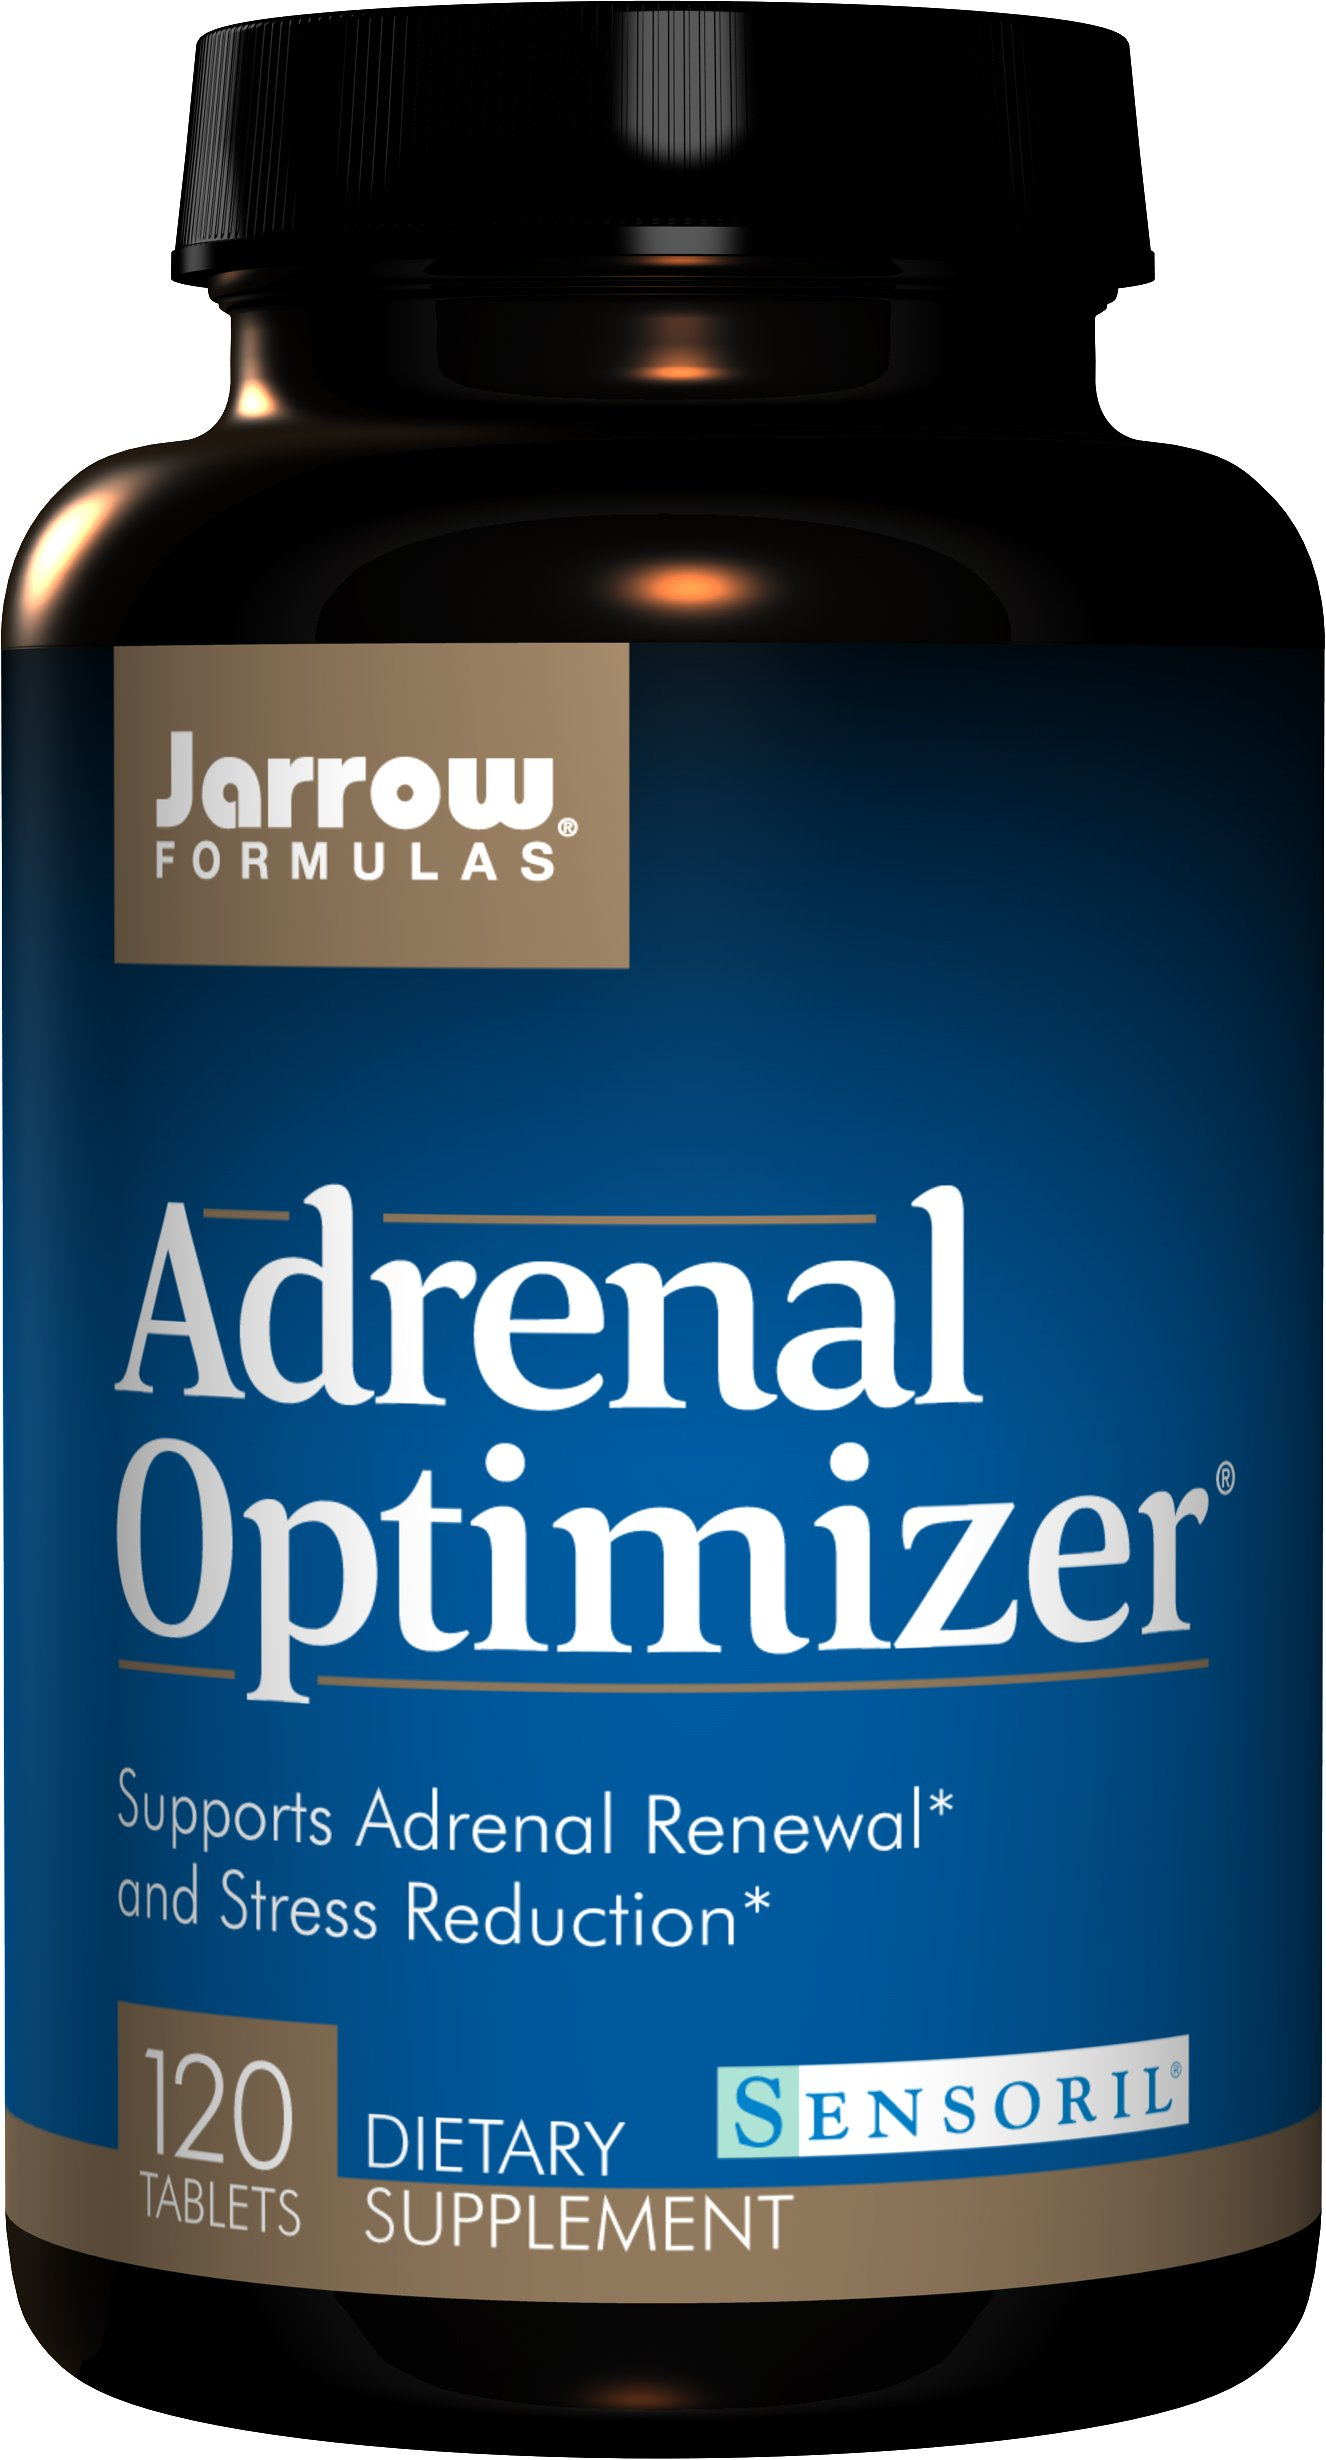 Jarrow Formulas Adrenal Optimizer, Supports Adrenal Renewal  and Stress Reduction, 120 Tabs